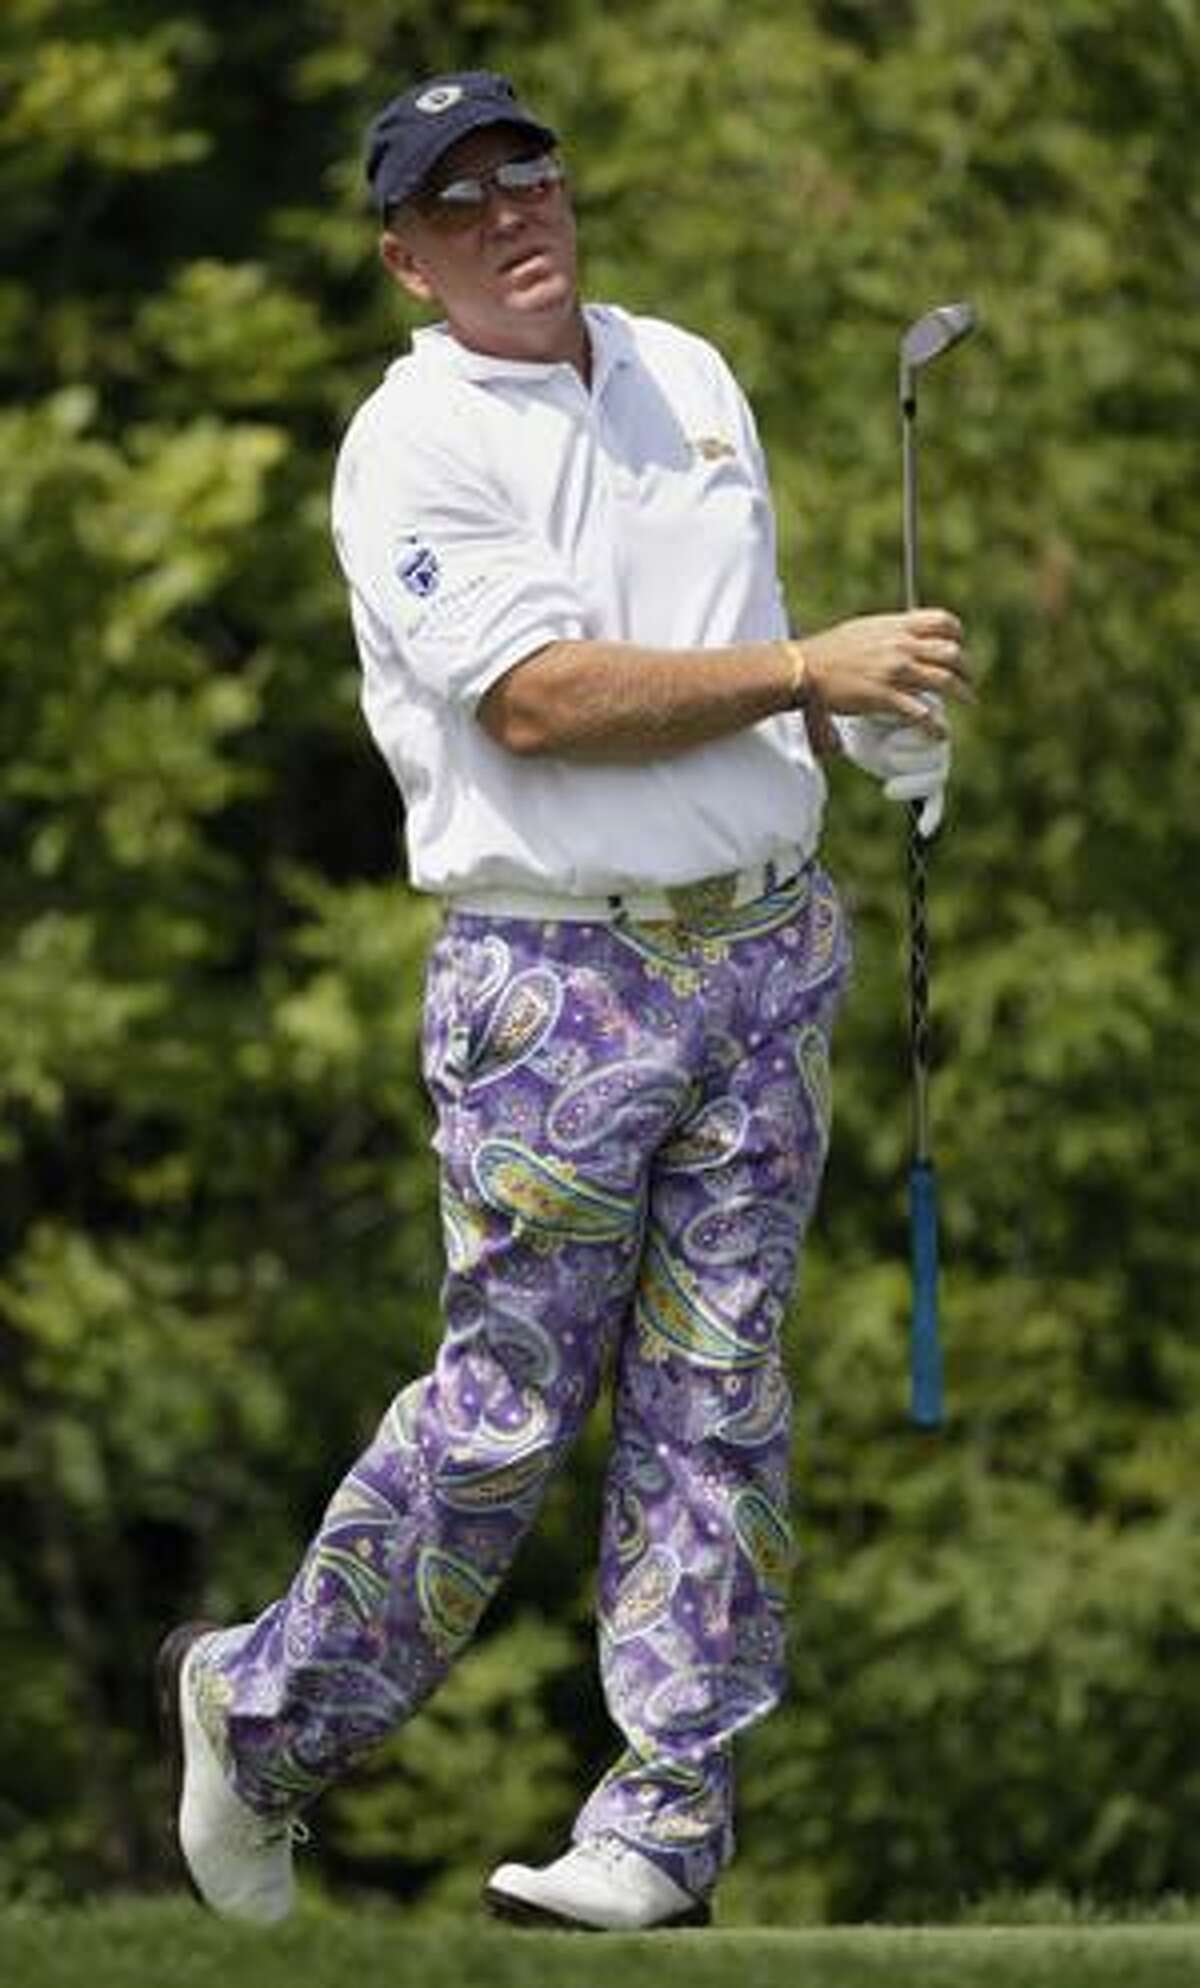 AP John Daly watches his tee shot on the 10th hole during the first round of the 91st PGA Championship at the Hazeltine National Golf Club in Chaska, Minn., Thursday. It was announced Tuesday that Daly will return to the Australian Open a year after a smashing a fan's camera into a tree during the tournament.